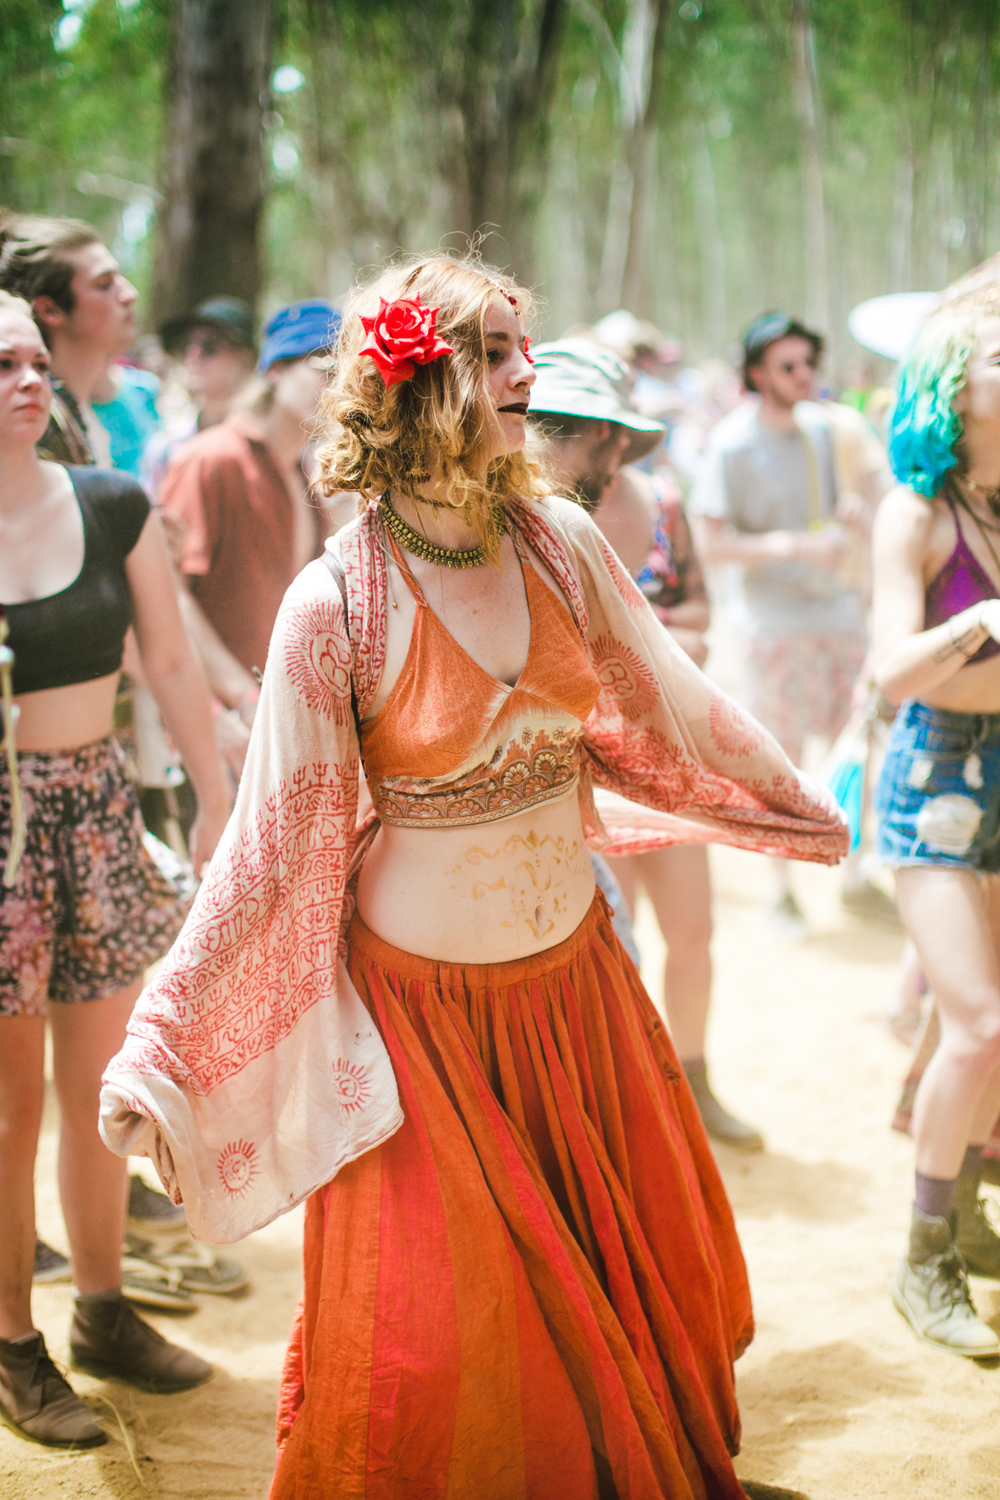 VOENA_STRAWBERRY_FIELDS_FESTIVAL_2014_PHOTOS_DOOF_AUSTRALIA-60.jpg